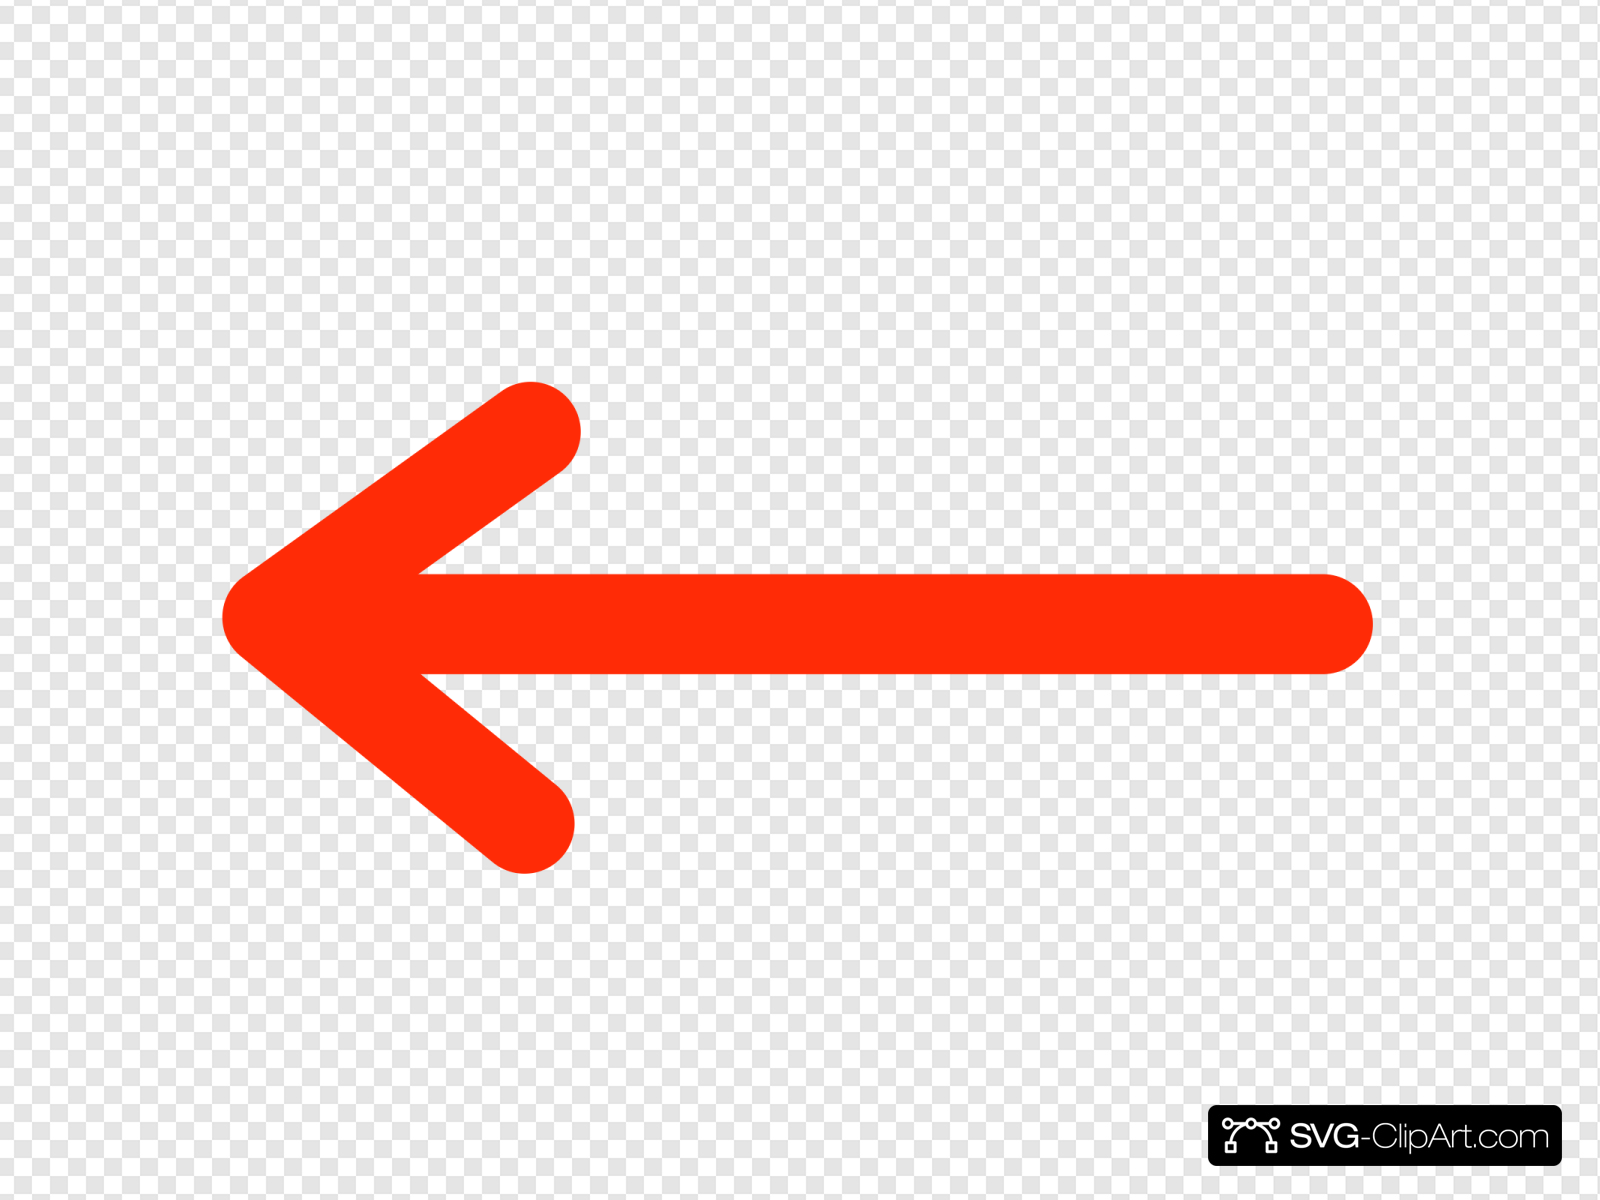 Red Arrow Clip art, Icon and SVG.